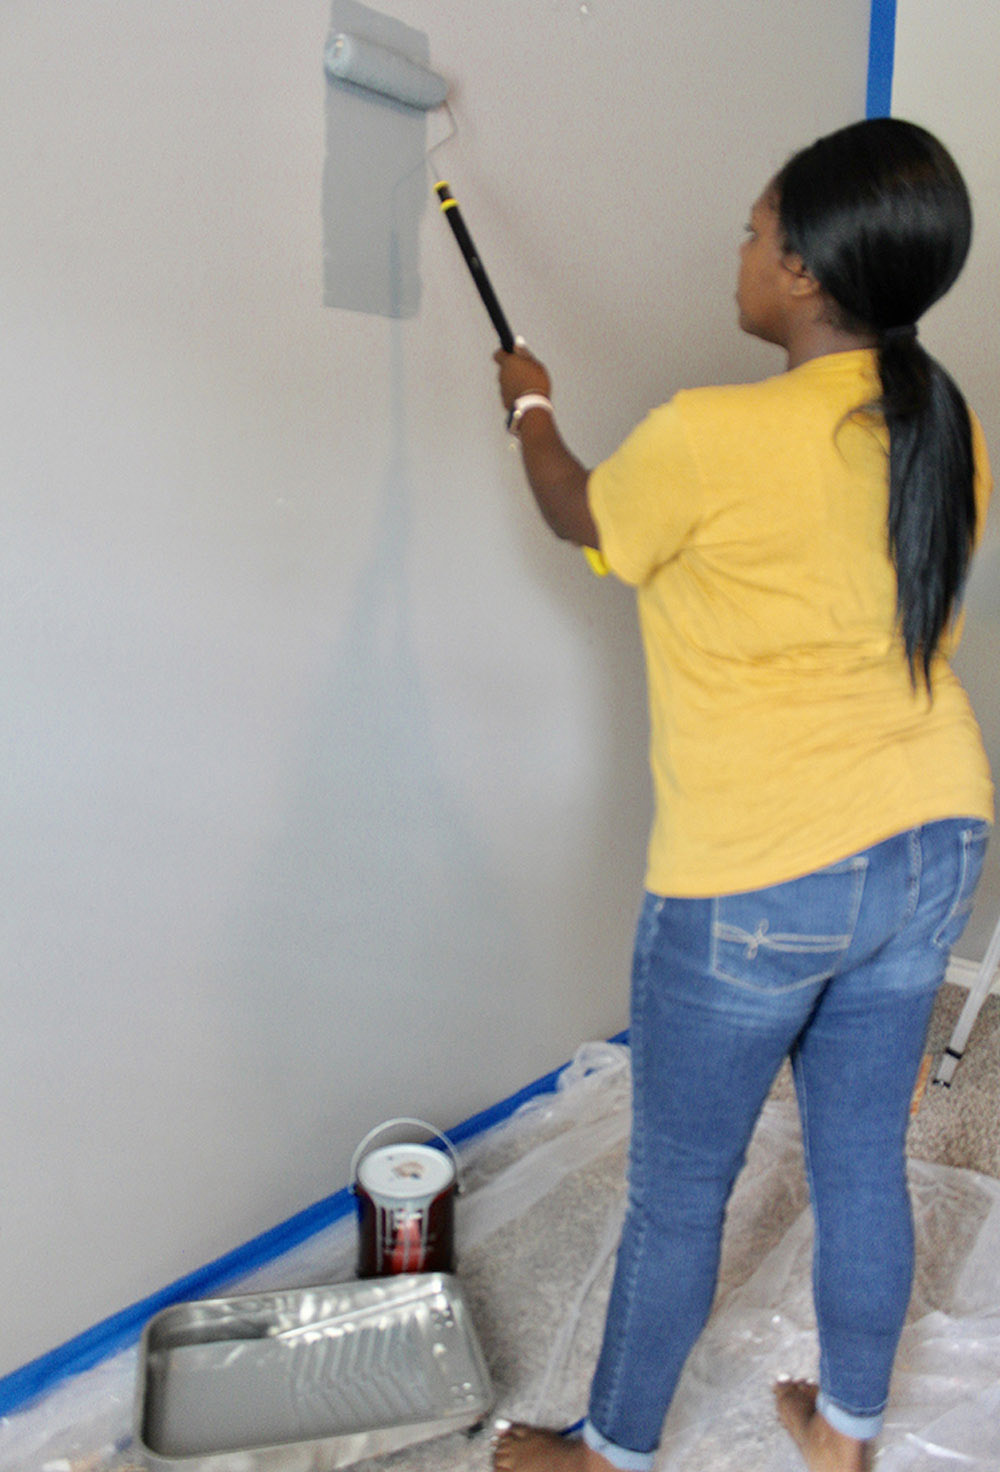 A woman rolling paint onto a wall.